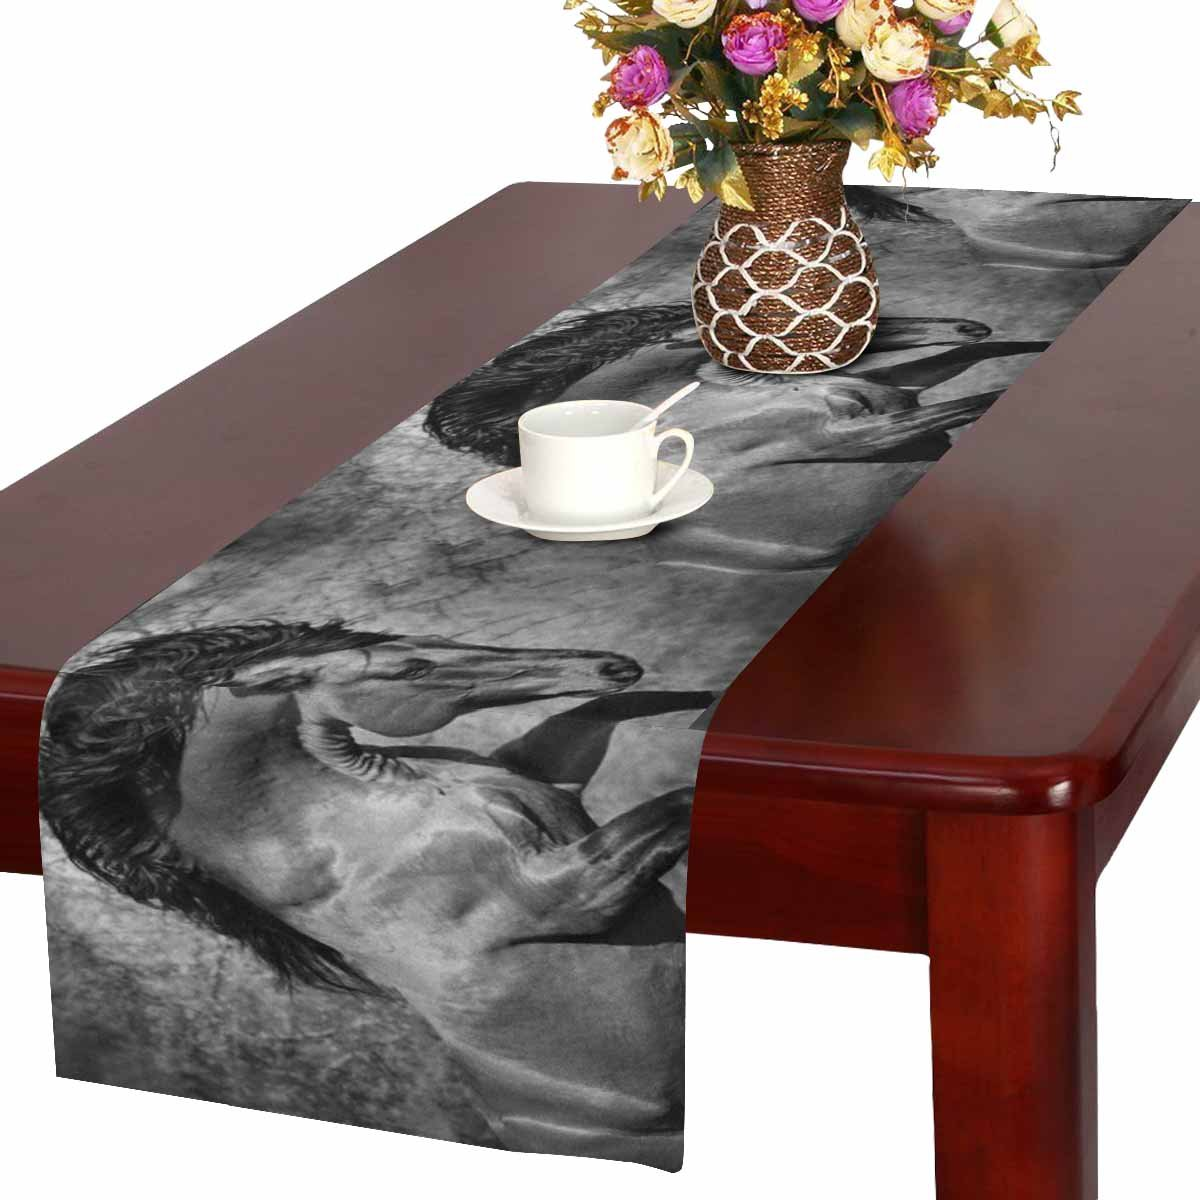 InterestPrint Running Big Beautiful Friesian Horse Cool Animal Table Runner Linen & Cotton Cloth Placemat Home Decor for Kitchen Dining Wedding Party 16 x 72 Inches